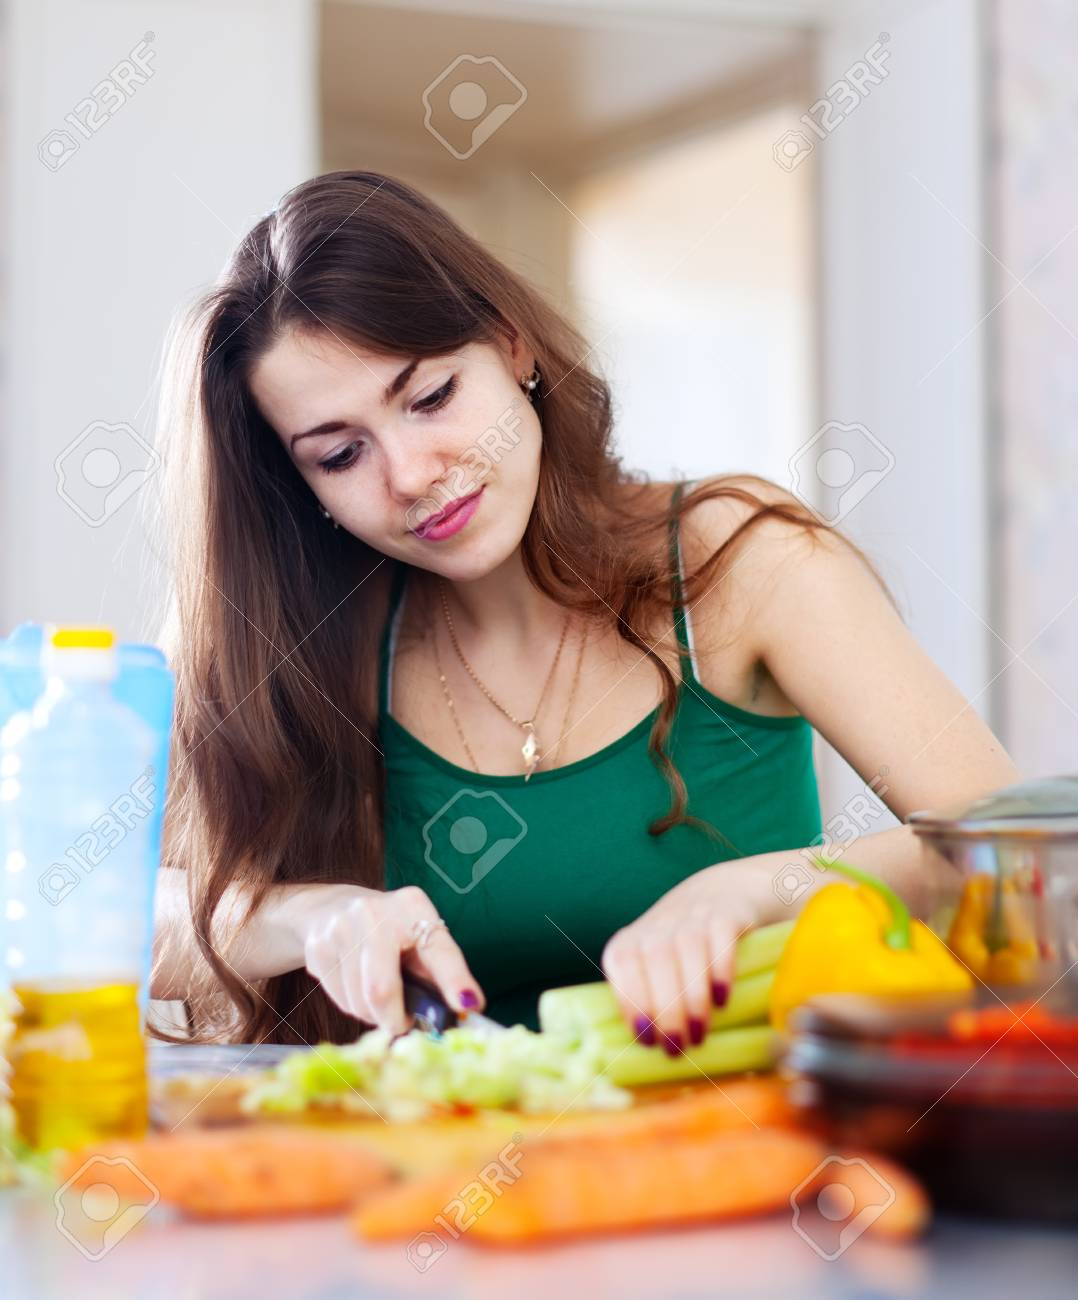 beautiful woman cutting green celery at her kitchen at home Stock Photo - 18343983